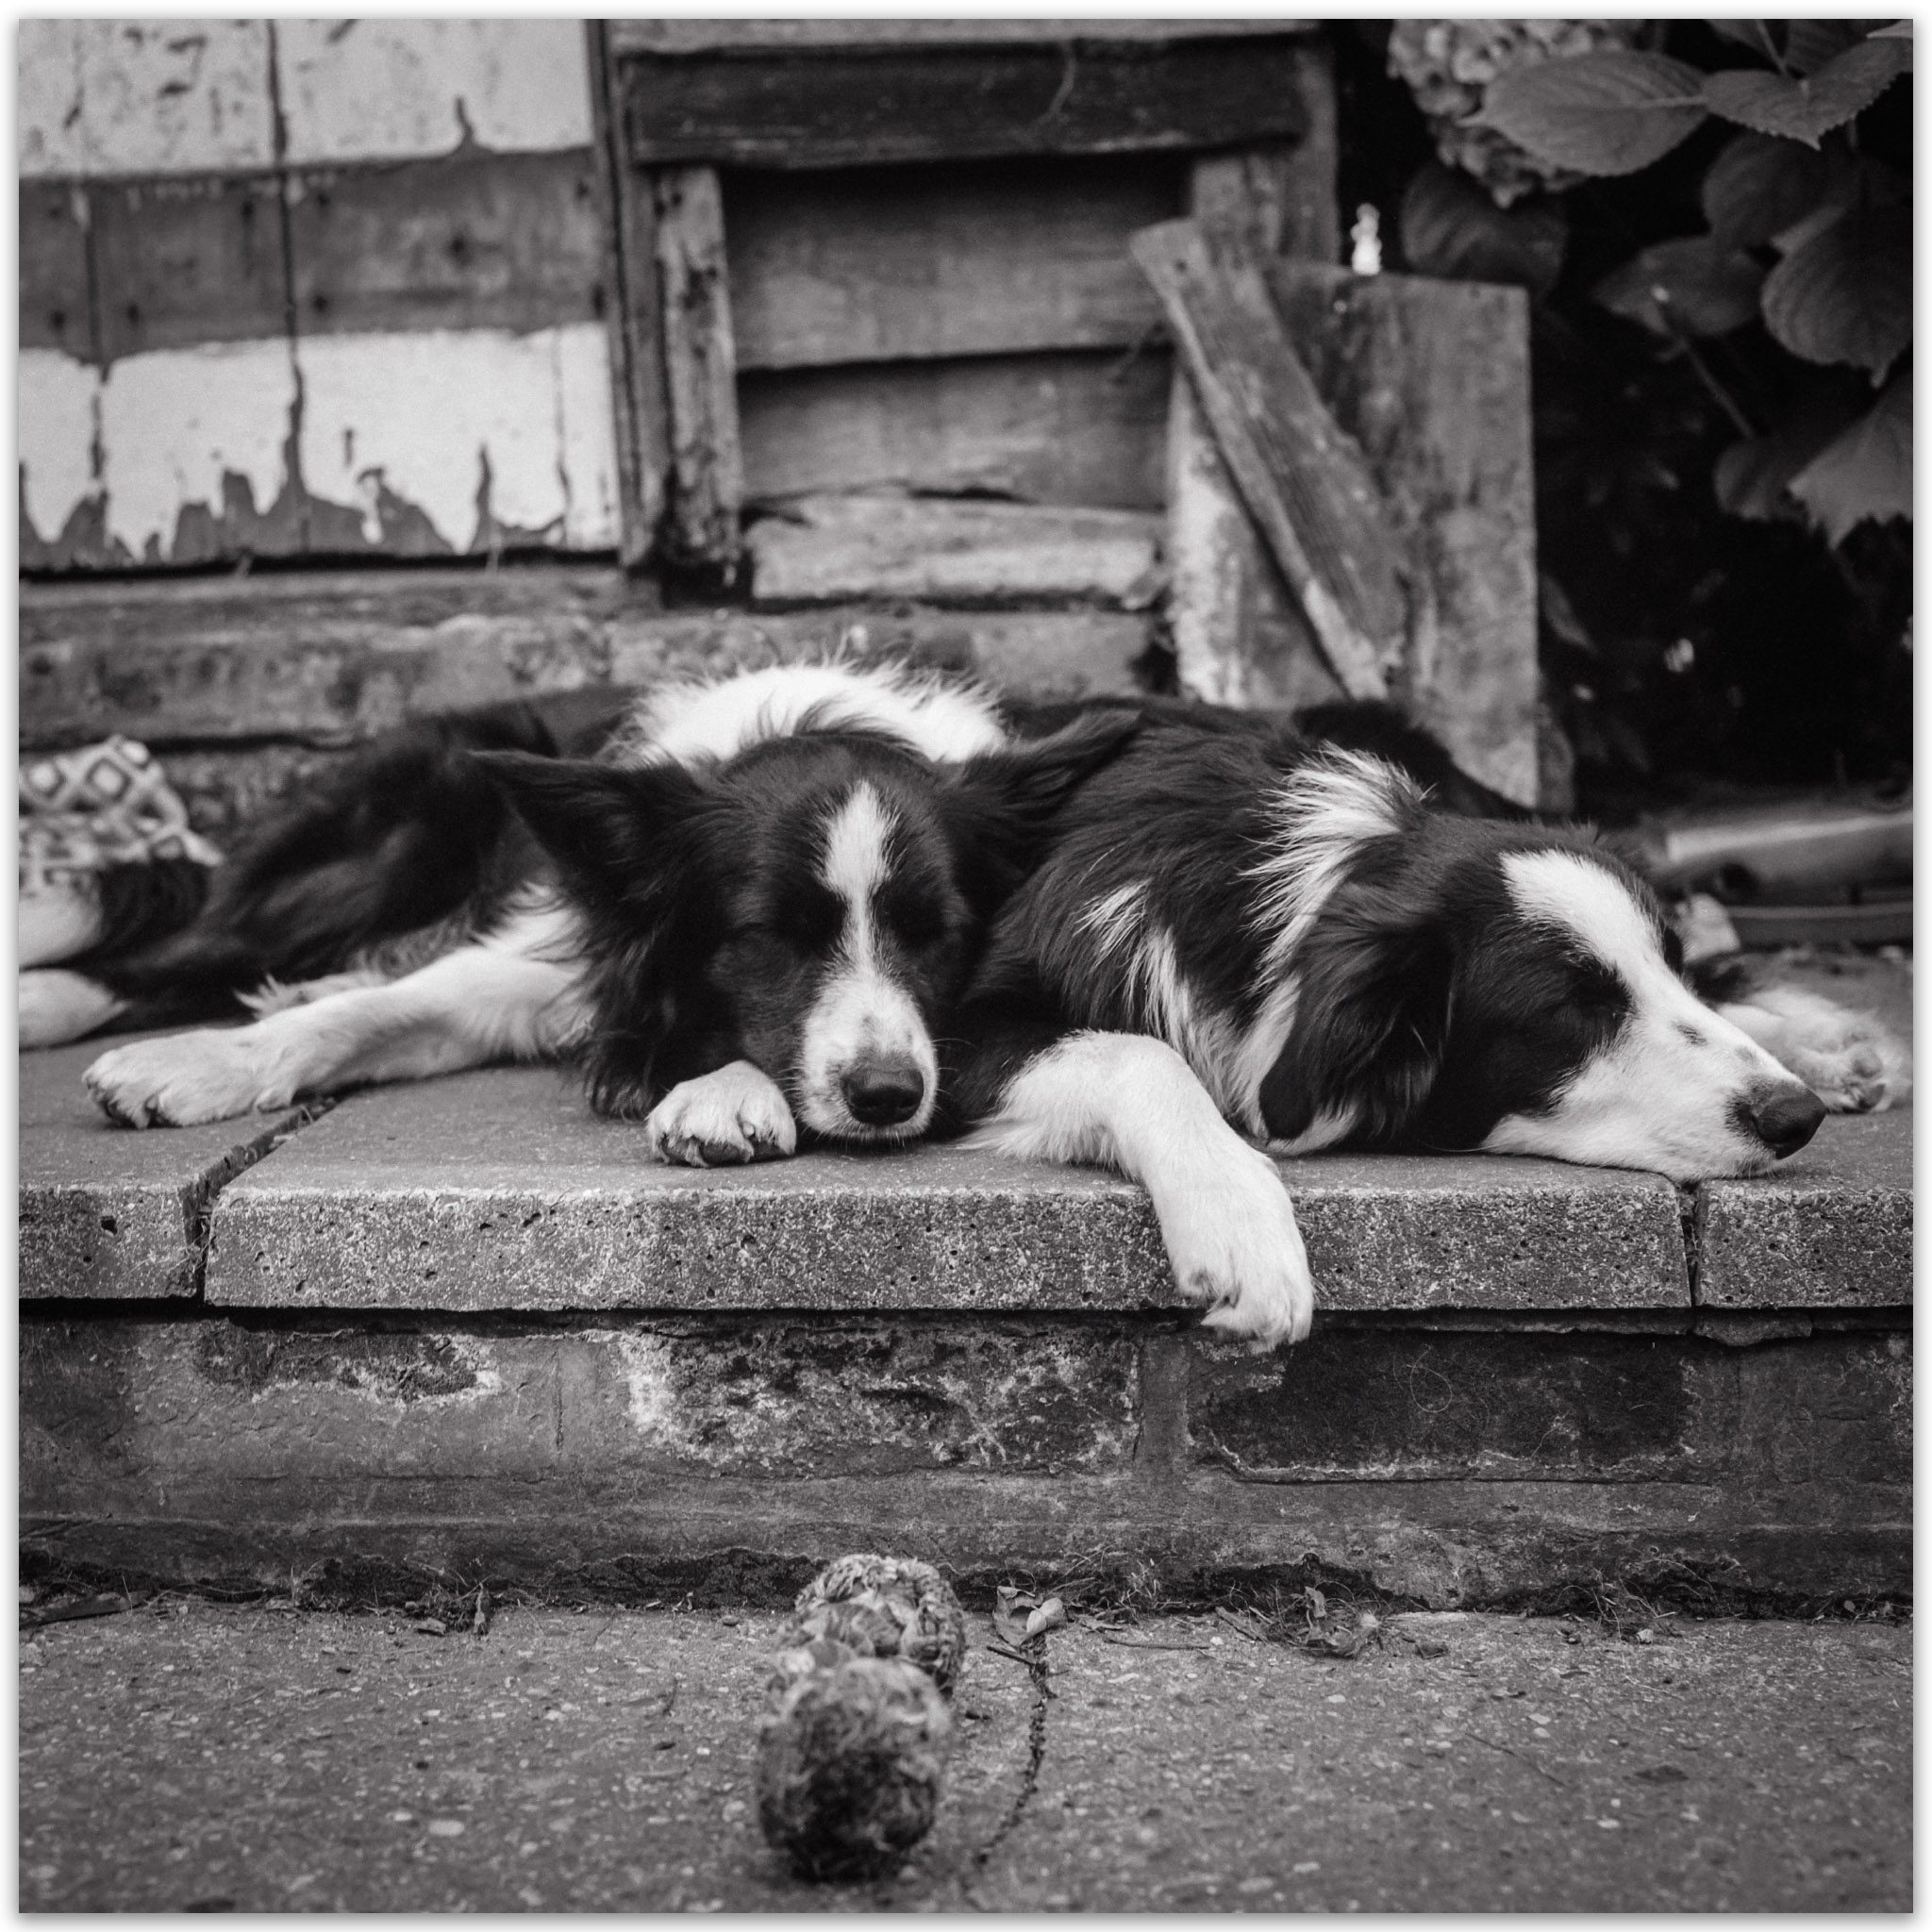 @apkeedle · Jul 8 Replying to @ILFORDPhoto Our two boys who are no longer with us. We have this printed large over the fireplace. Luka and Buddy. Smiling face with heart-shaped eyes Blad with FP4 #ilfordphoto #fridayfavourites #filmmemories